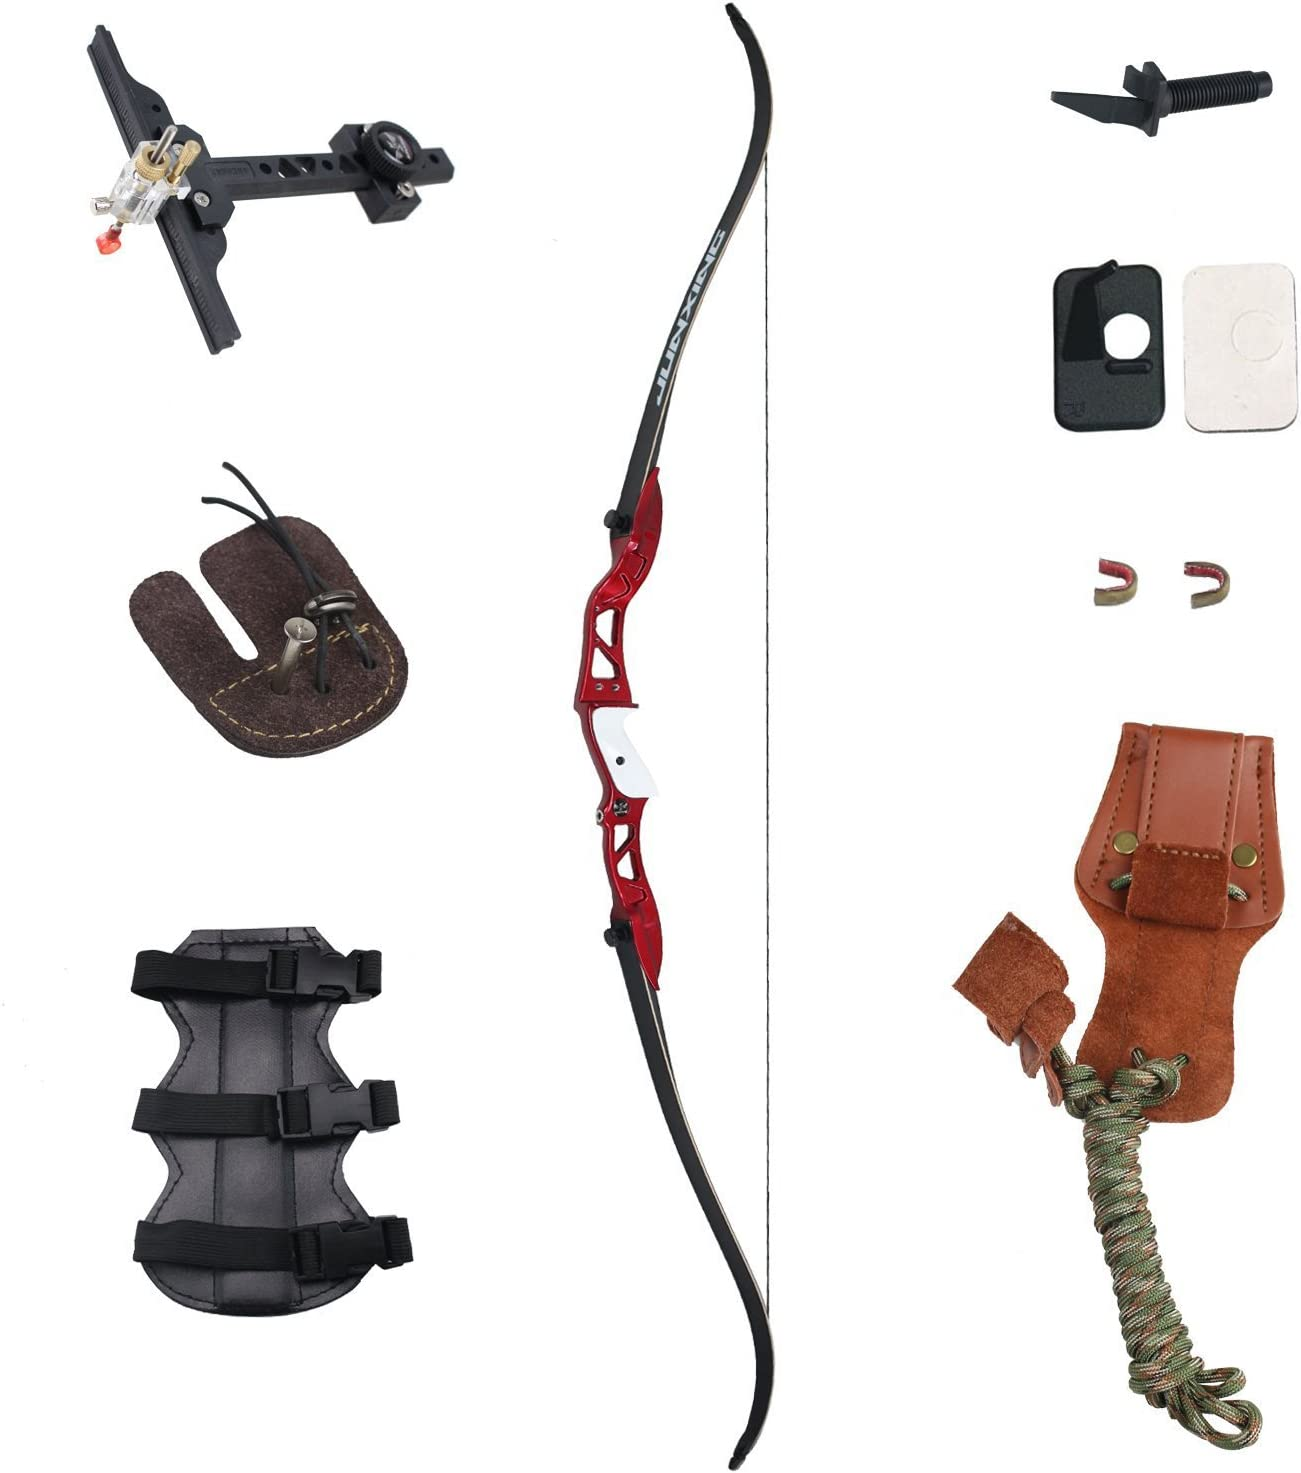 SinoArt 66 Metal Riser Takedown Recurve Bow Adult Archery Competition Athletic Bow Weights 20 22 24 26 28 30 32 34 36 LB Right Handed Archery Kit